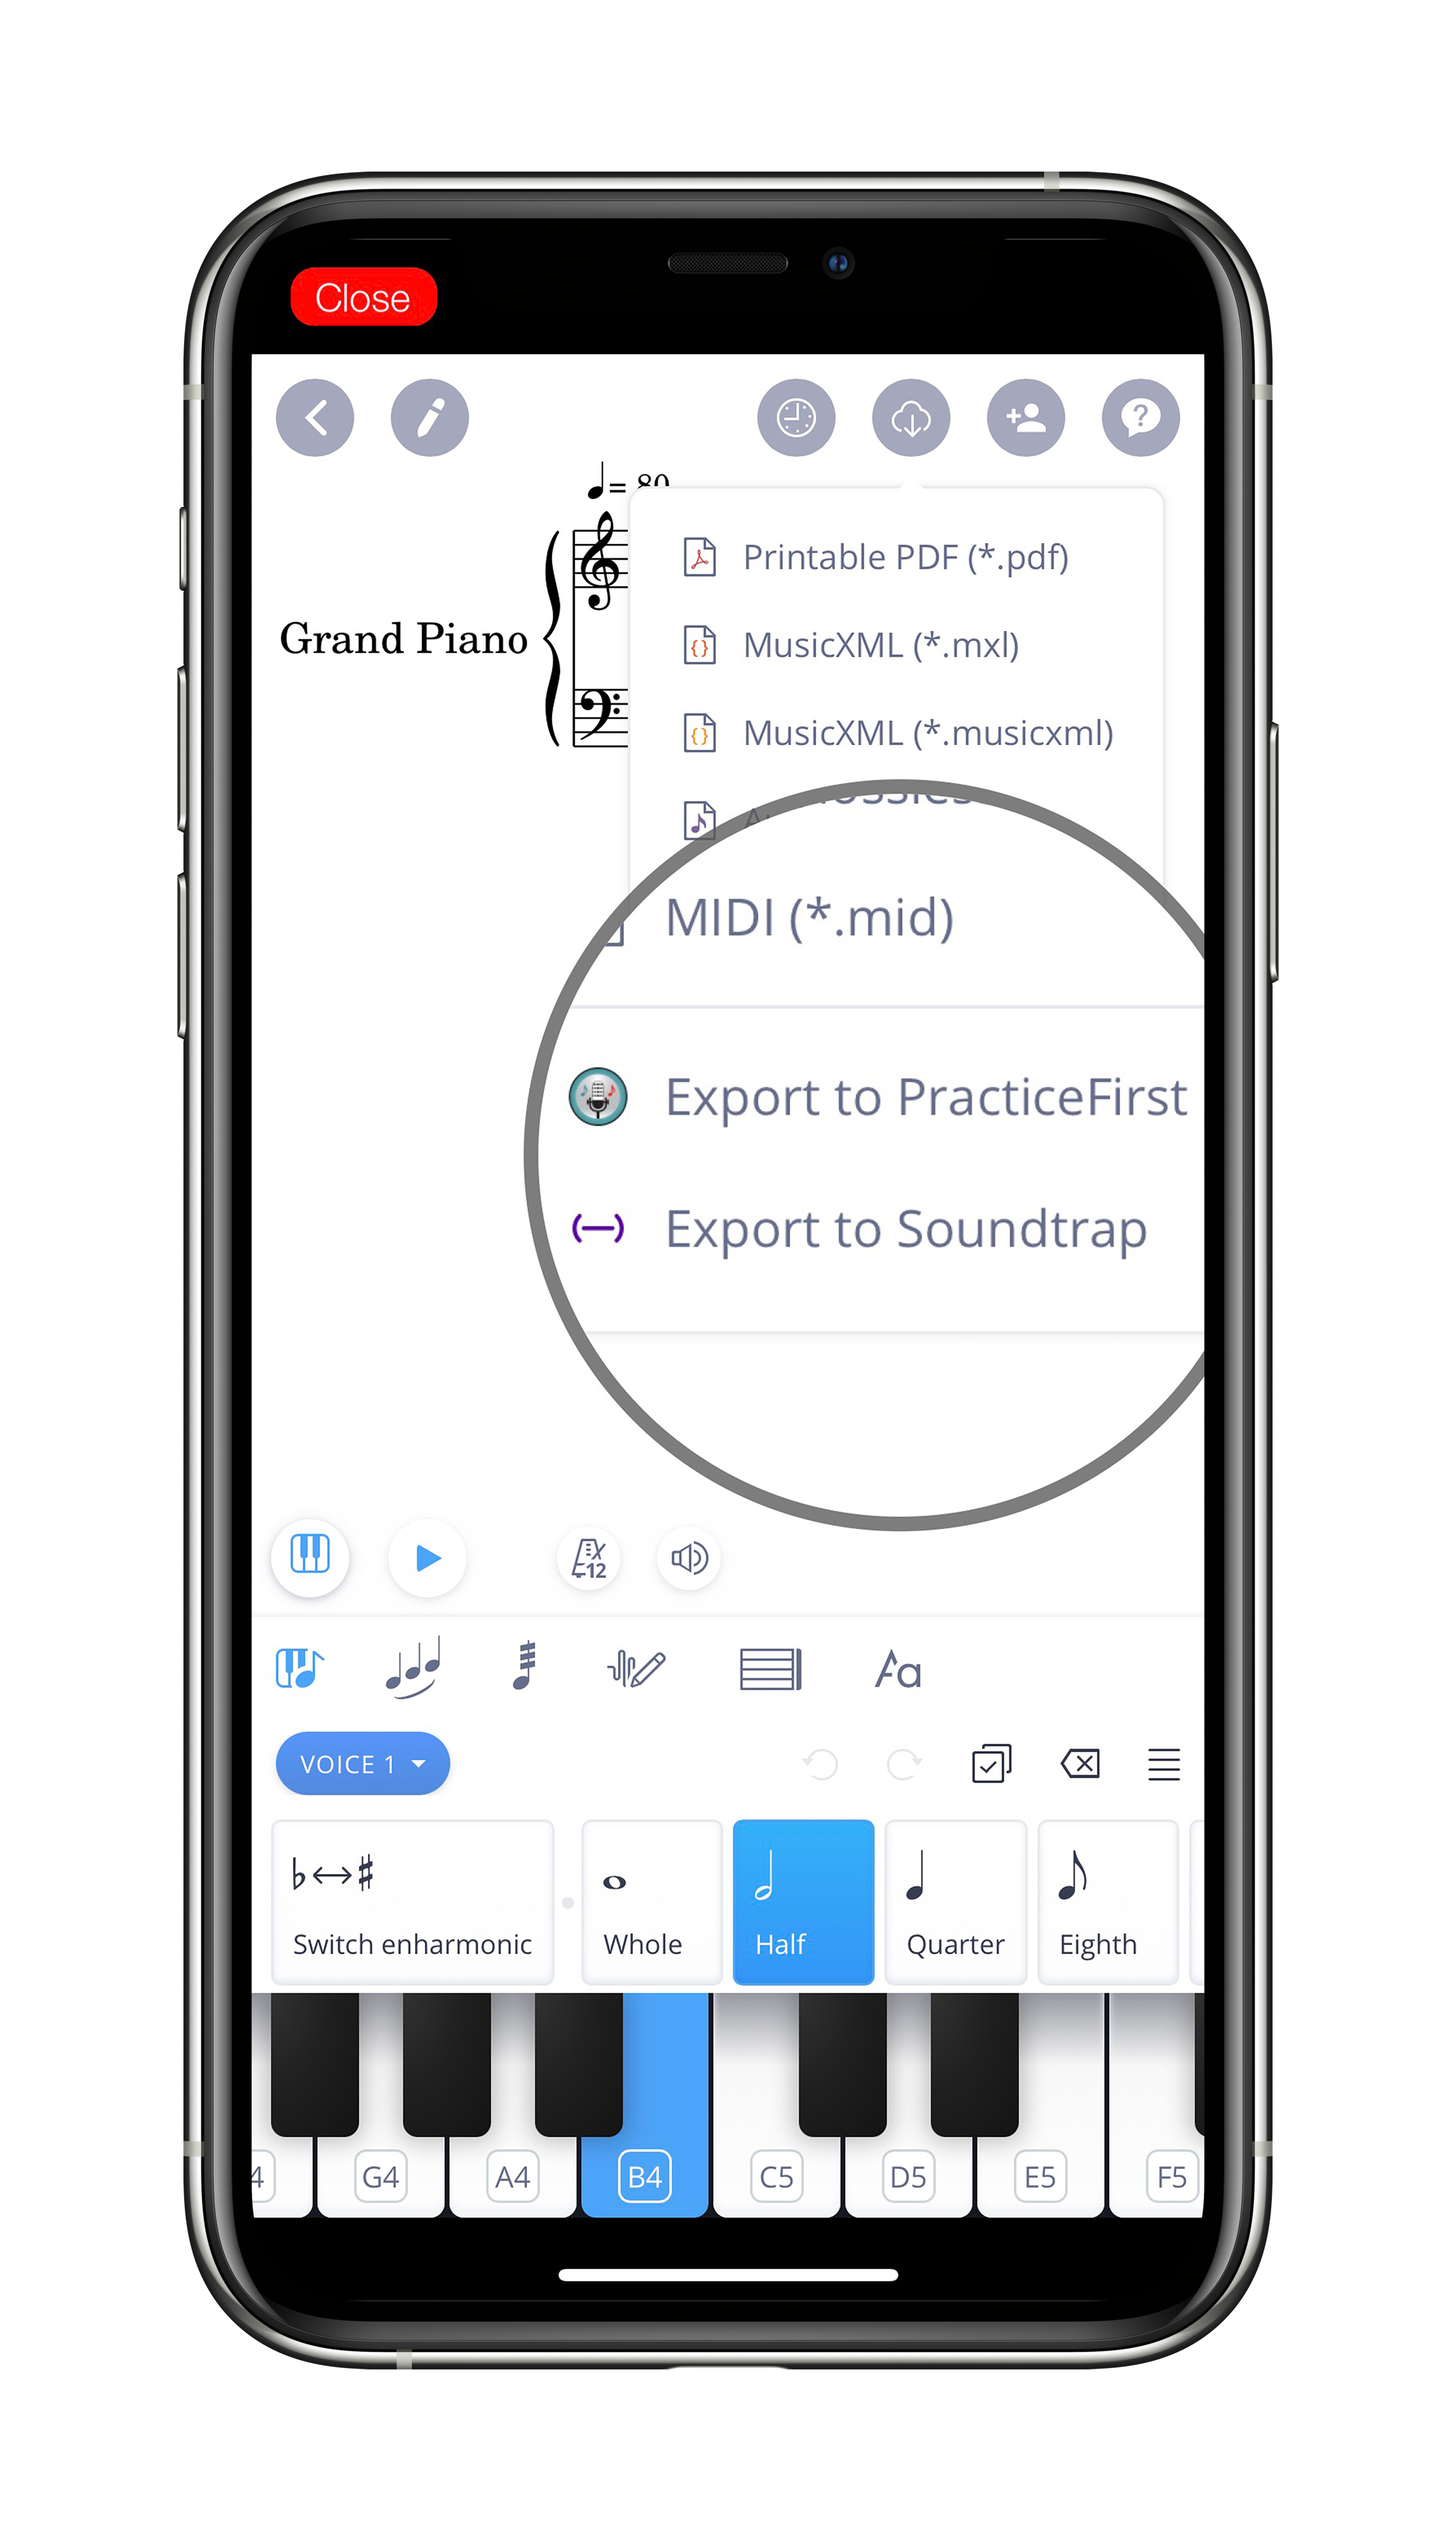 Flat for Education app open on iPhone. Export to PracticeFirst & Export to Soundtrap function magnified.